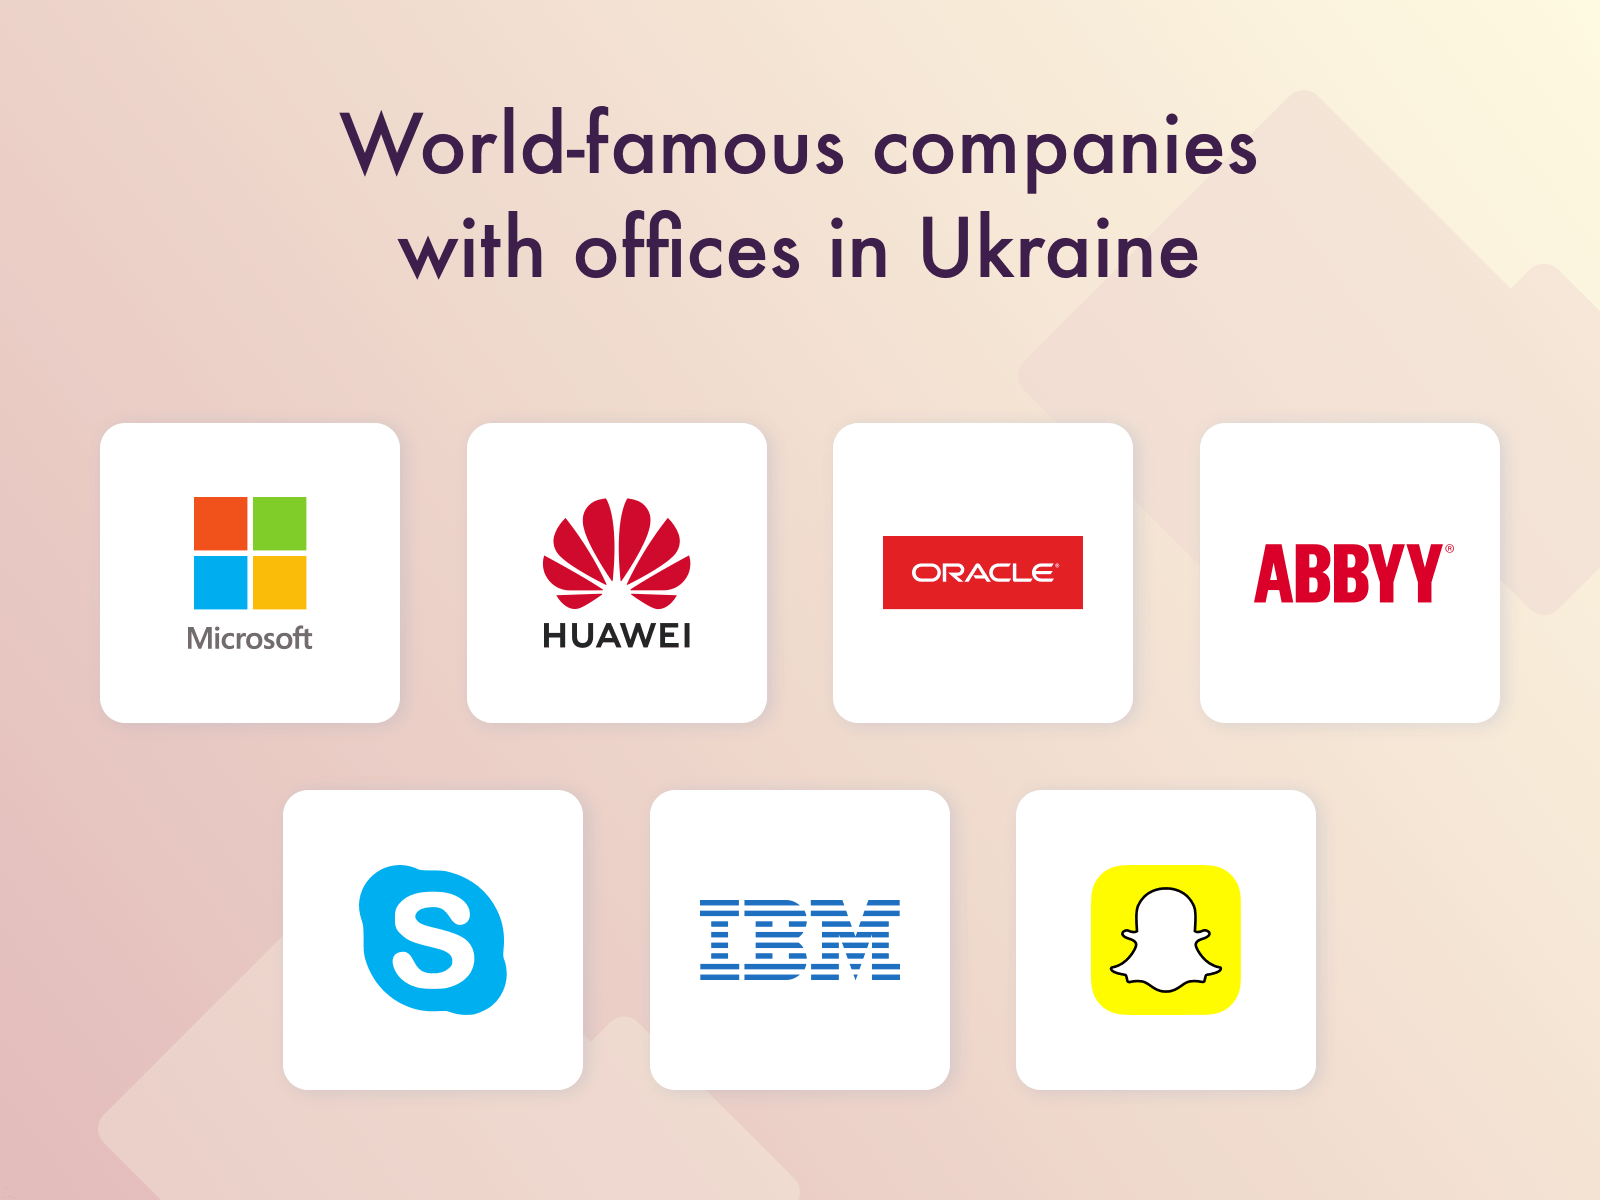 Famous companies with offices in Ukraine